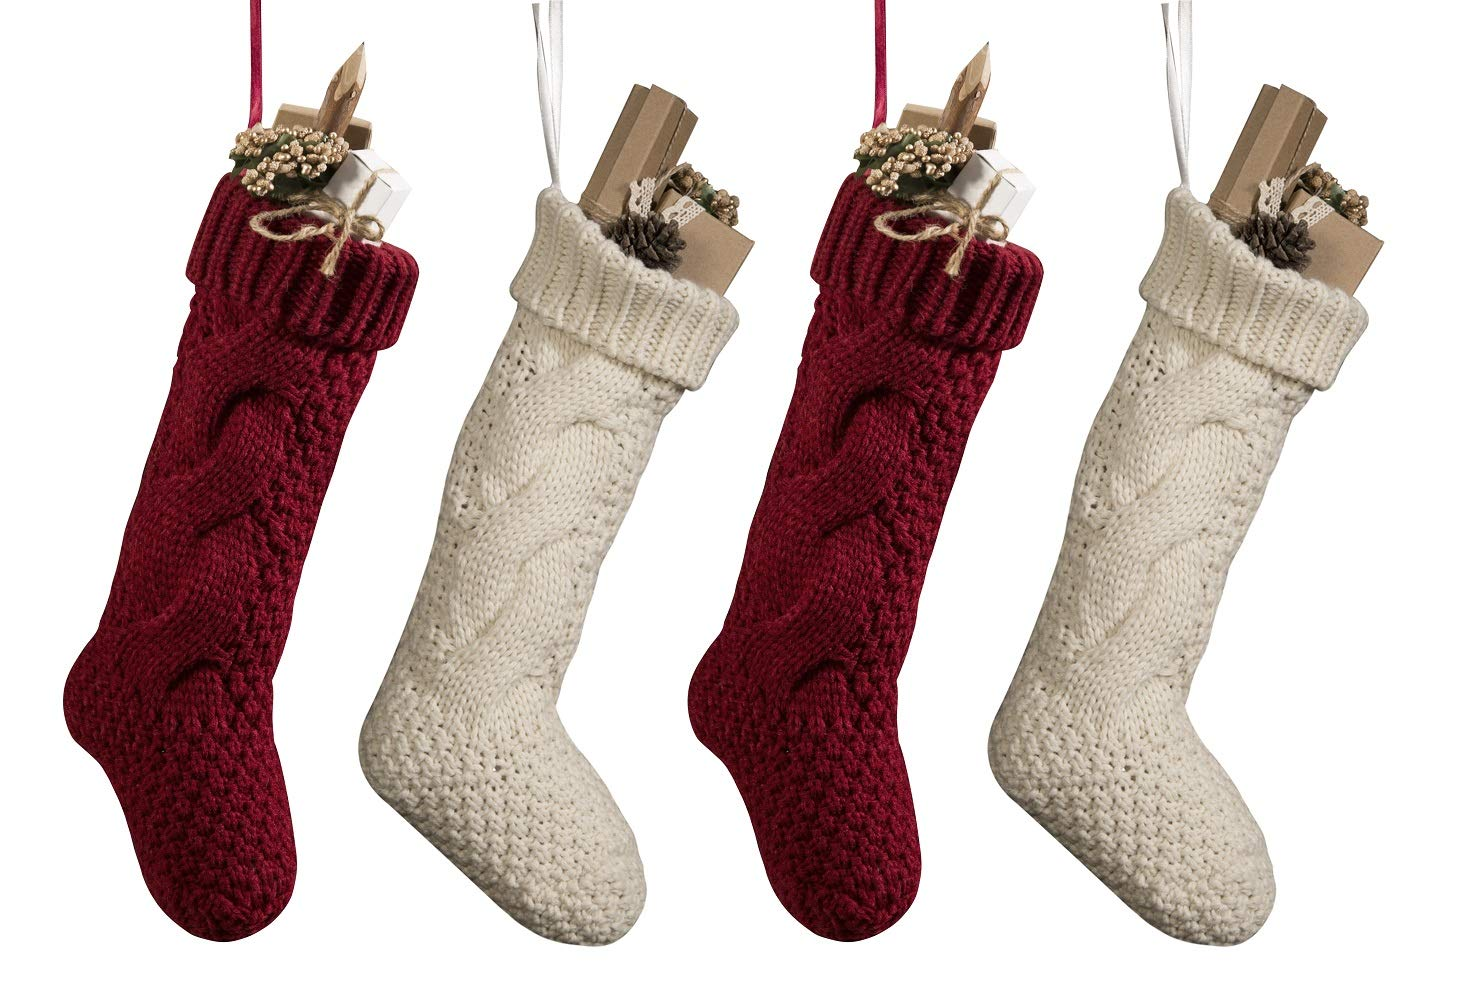 Pack 4, Unique Burgundy and Ivory White Knit Christmas Stockings 14''